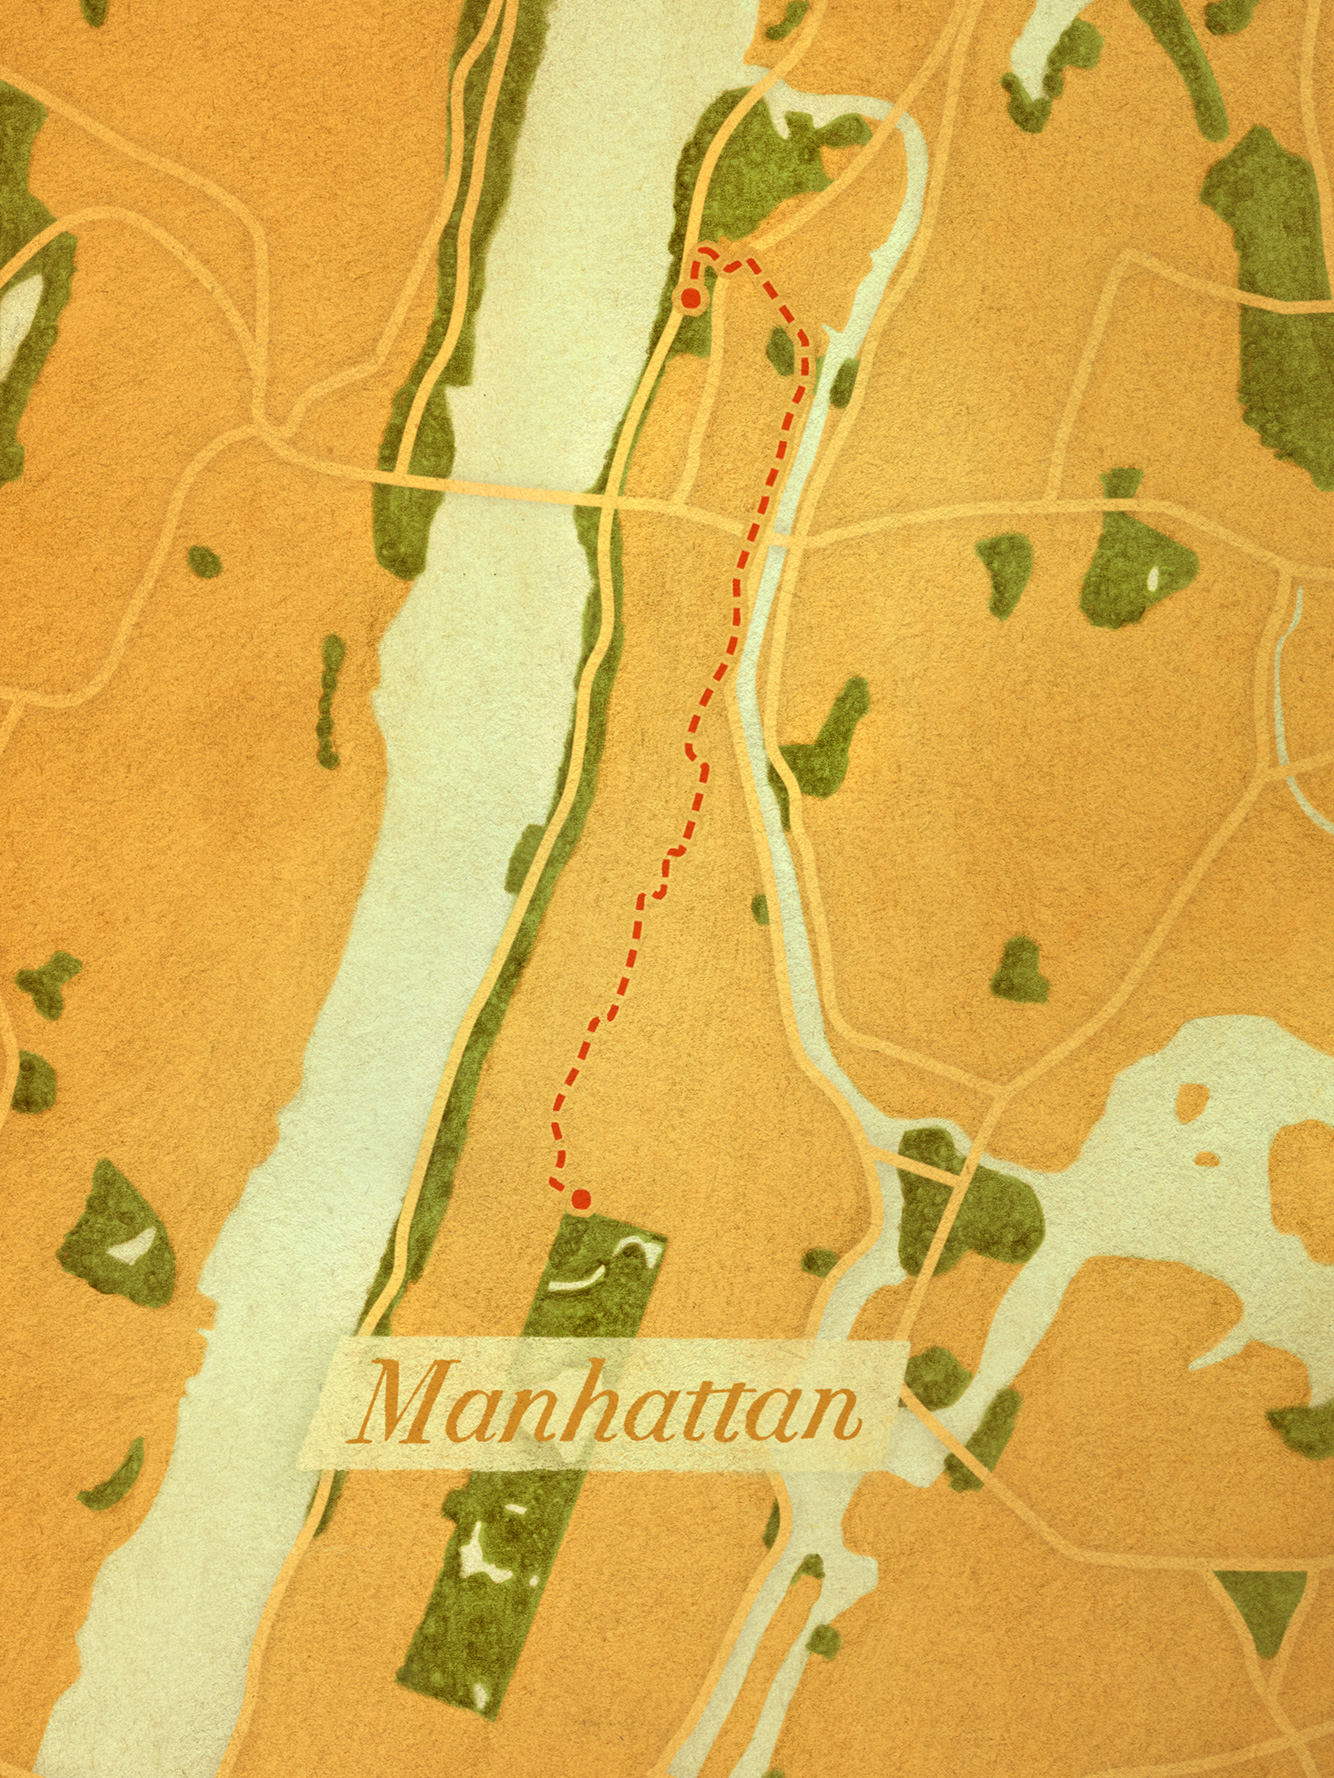 The Giraffe Path (Manhattan).  View more »